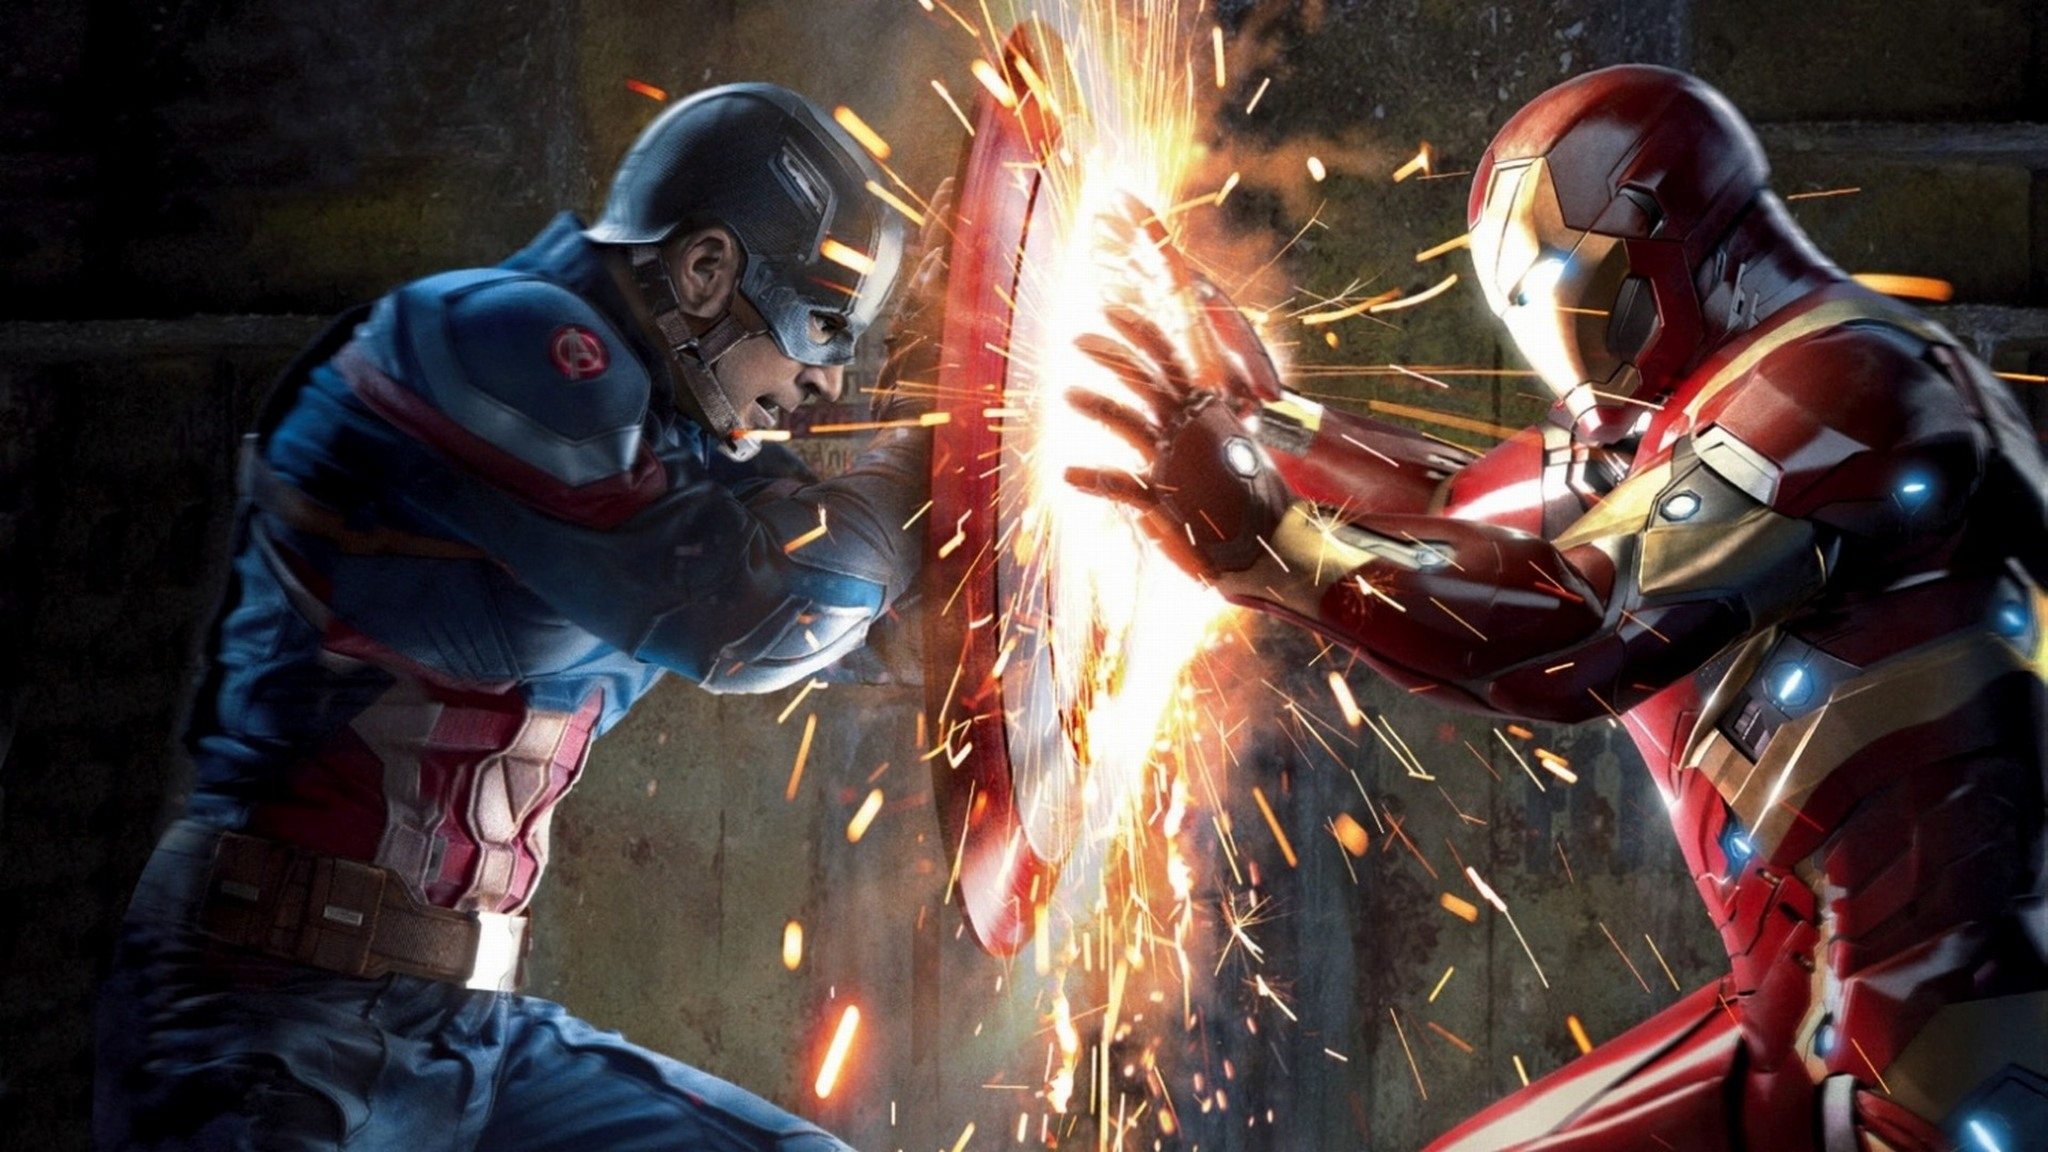 2048x1152 Captain America Vs Iron Man Civil War 2048x1152 Resolution Hd 4k Wallpapers Images Backgrounds Photos And Pictures